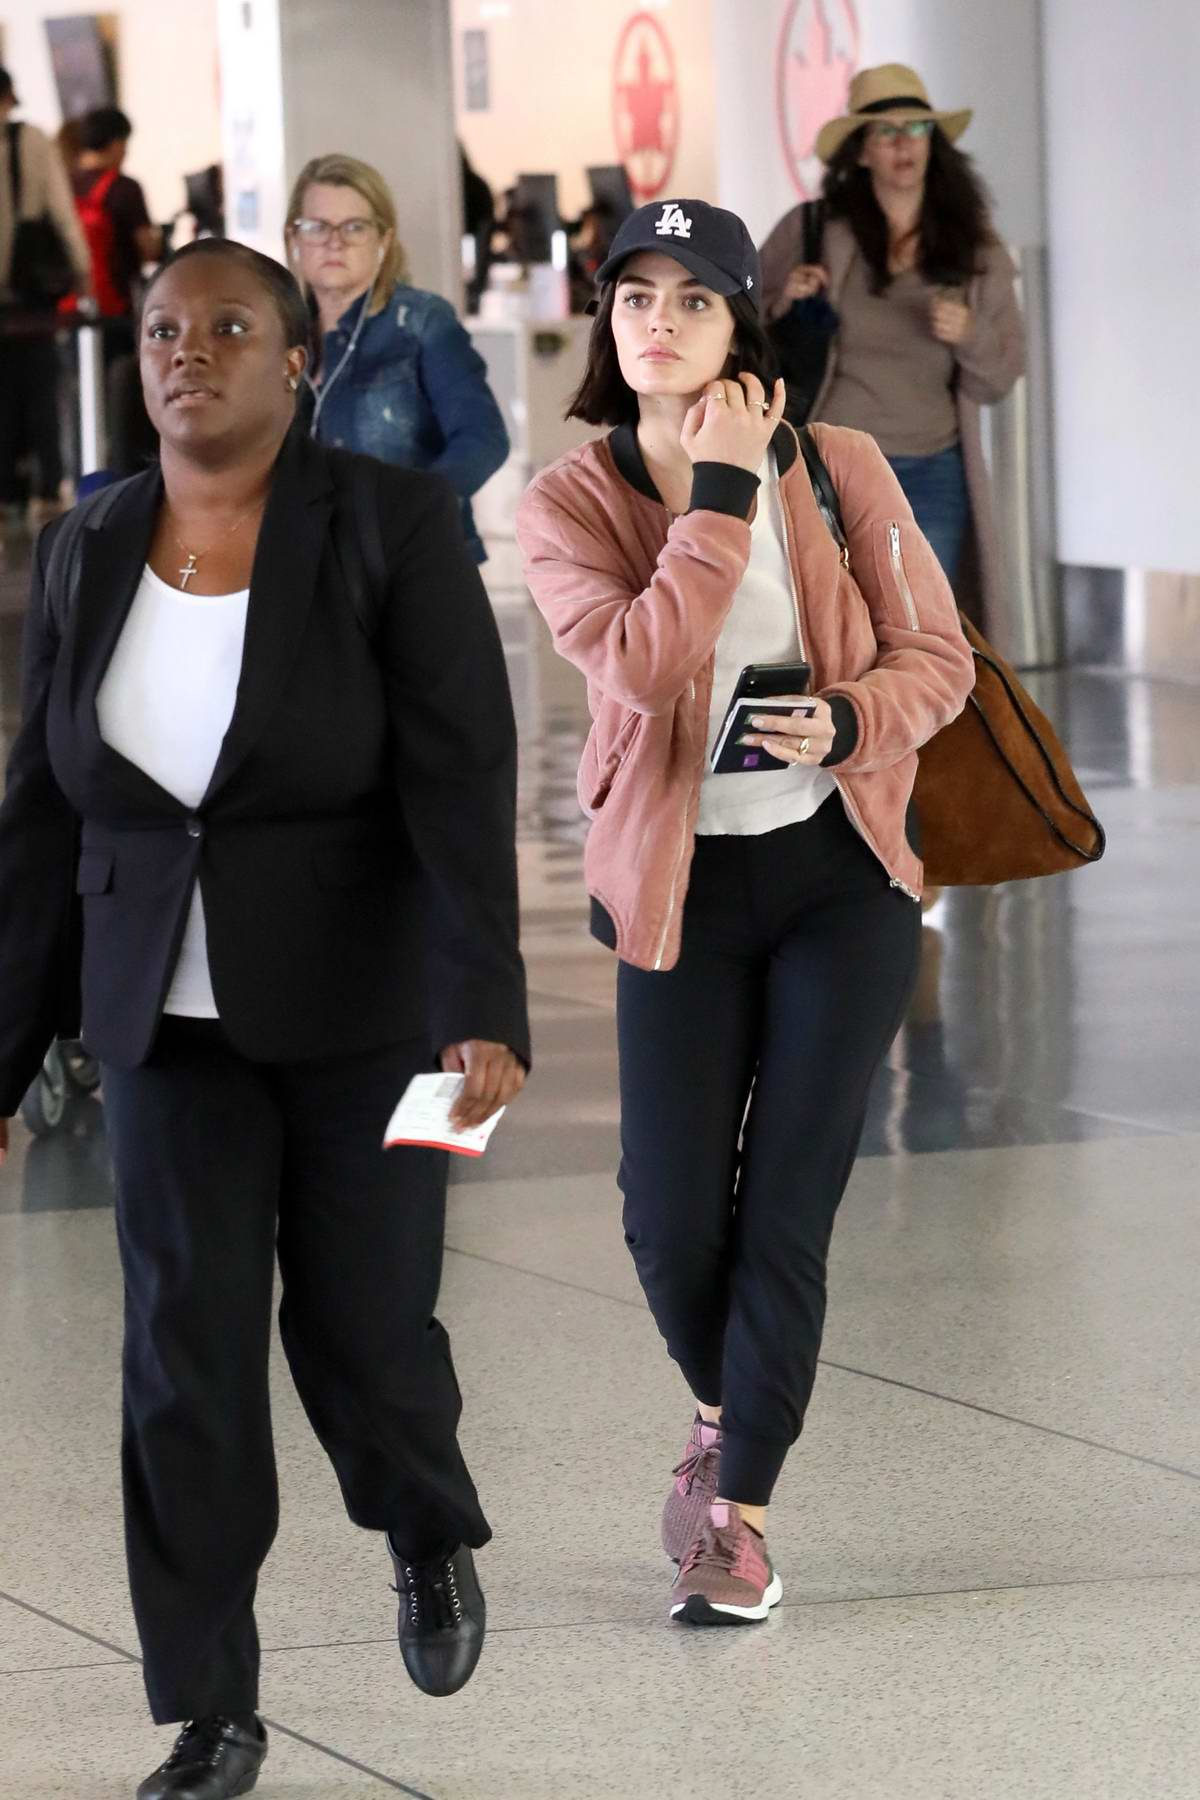 Lucy Hale dons a peach colored jacket with 'LA' hat as she arrives at LAX in Los Angeles